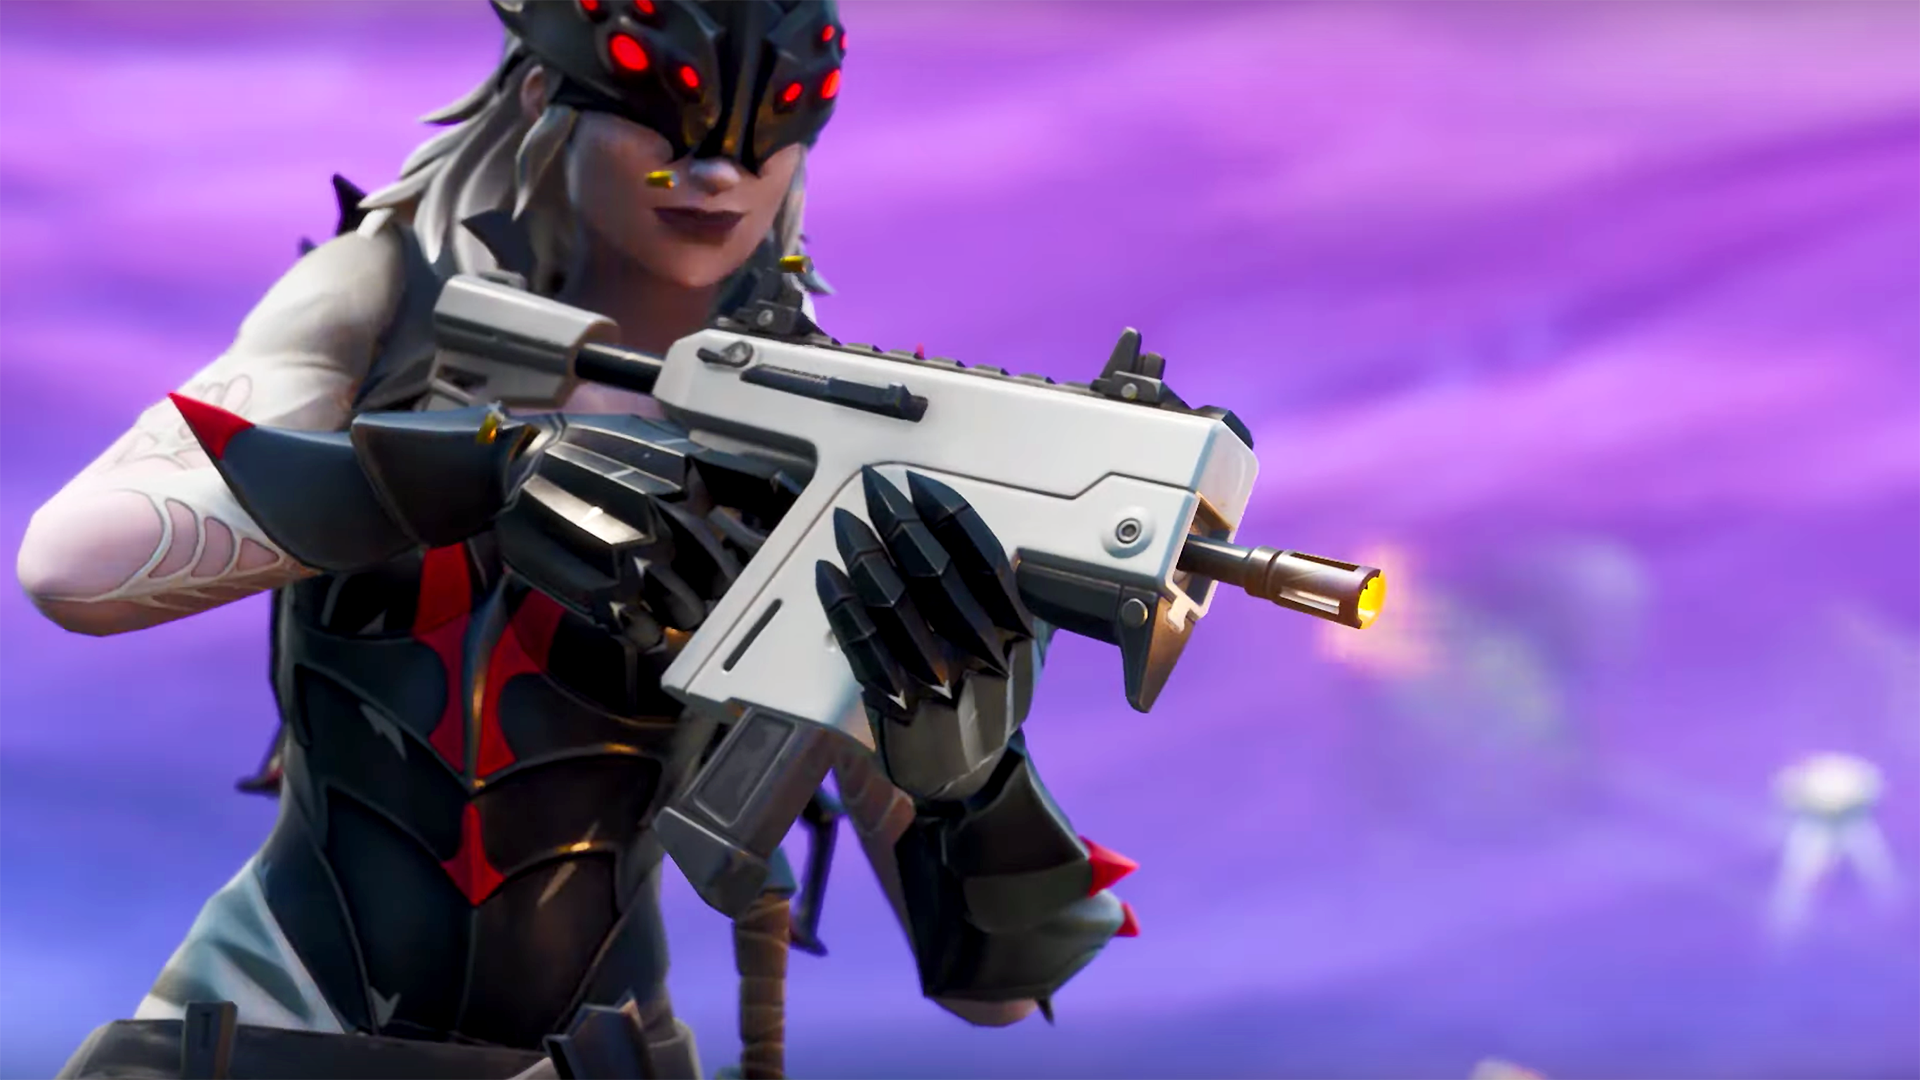 Image result for burst smg fortnite in week 4 challenges